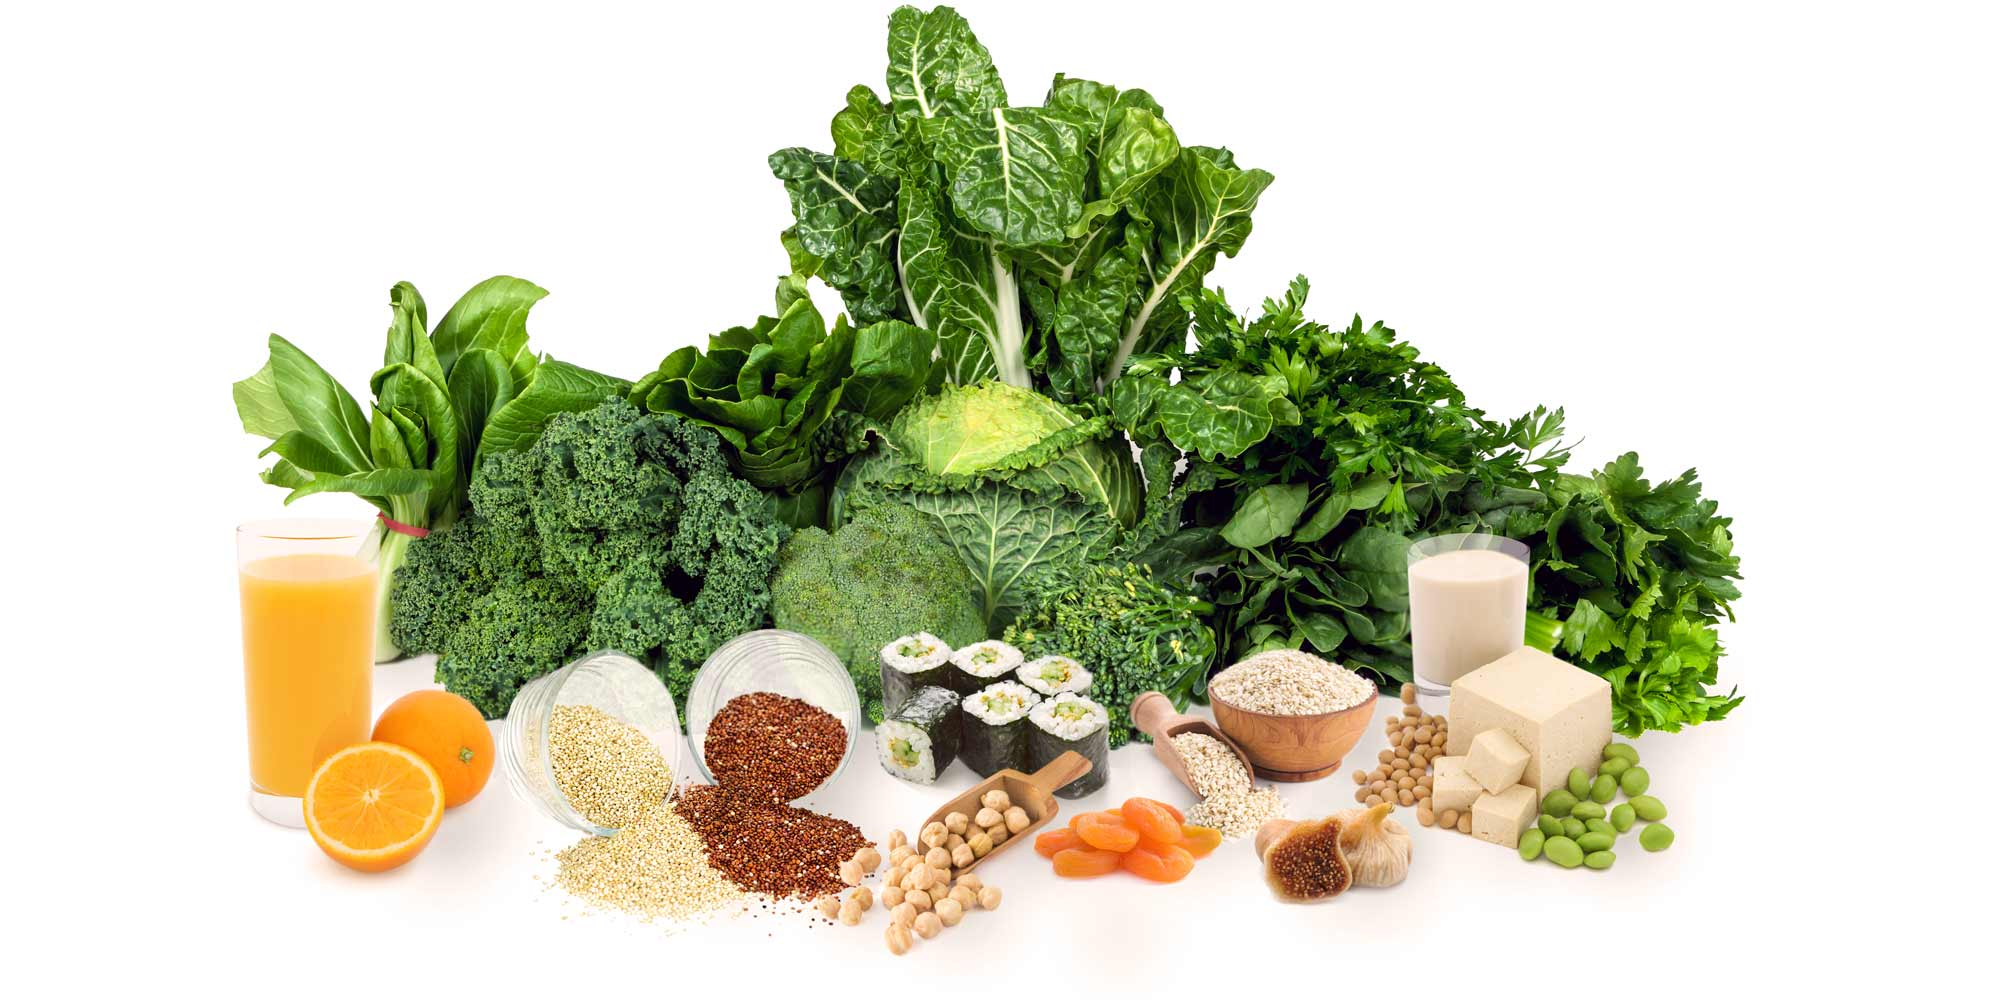 Just a small selection of the non dairy sources of calcium rich food: quinoa, sesame seeds, dark green leafy vegetables, seaweed, enriched fruit juice, chickpeas, dried figs and apricots.